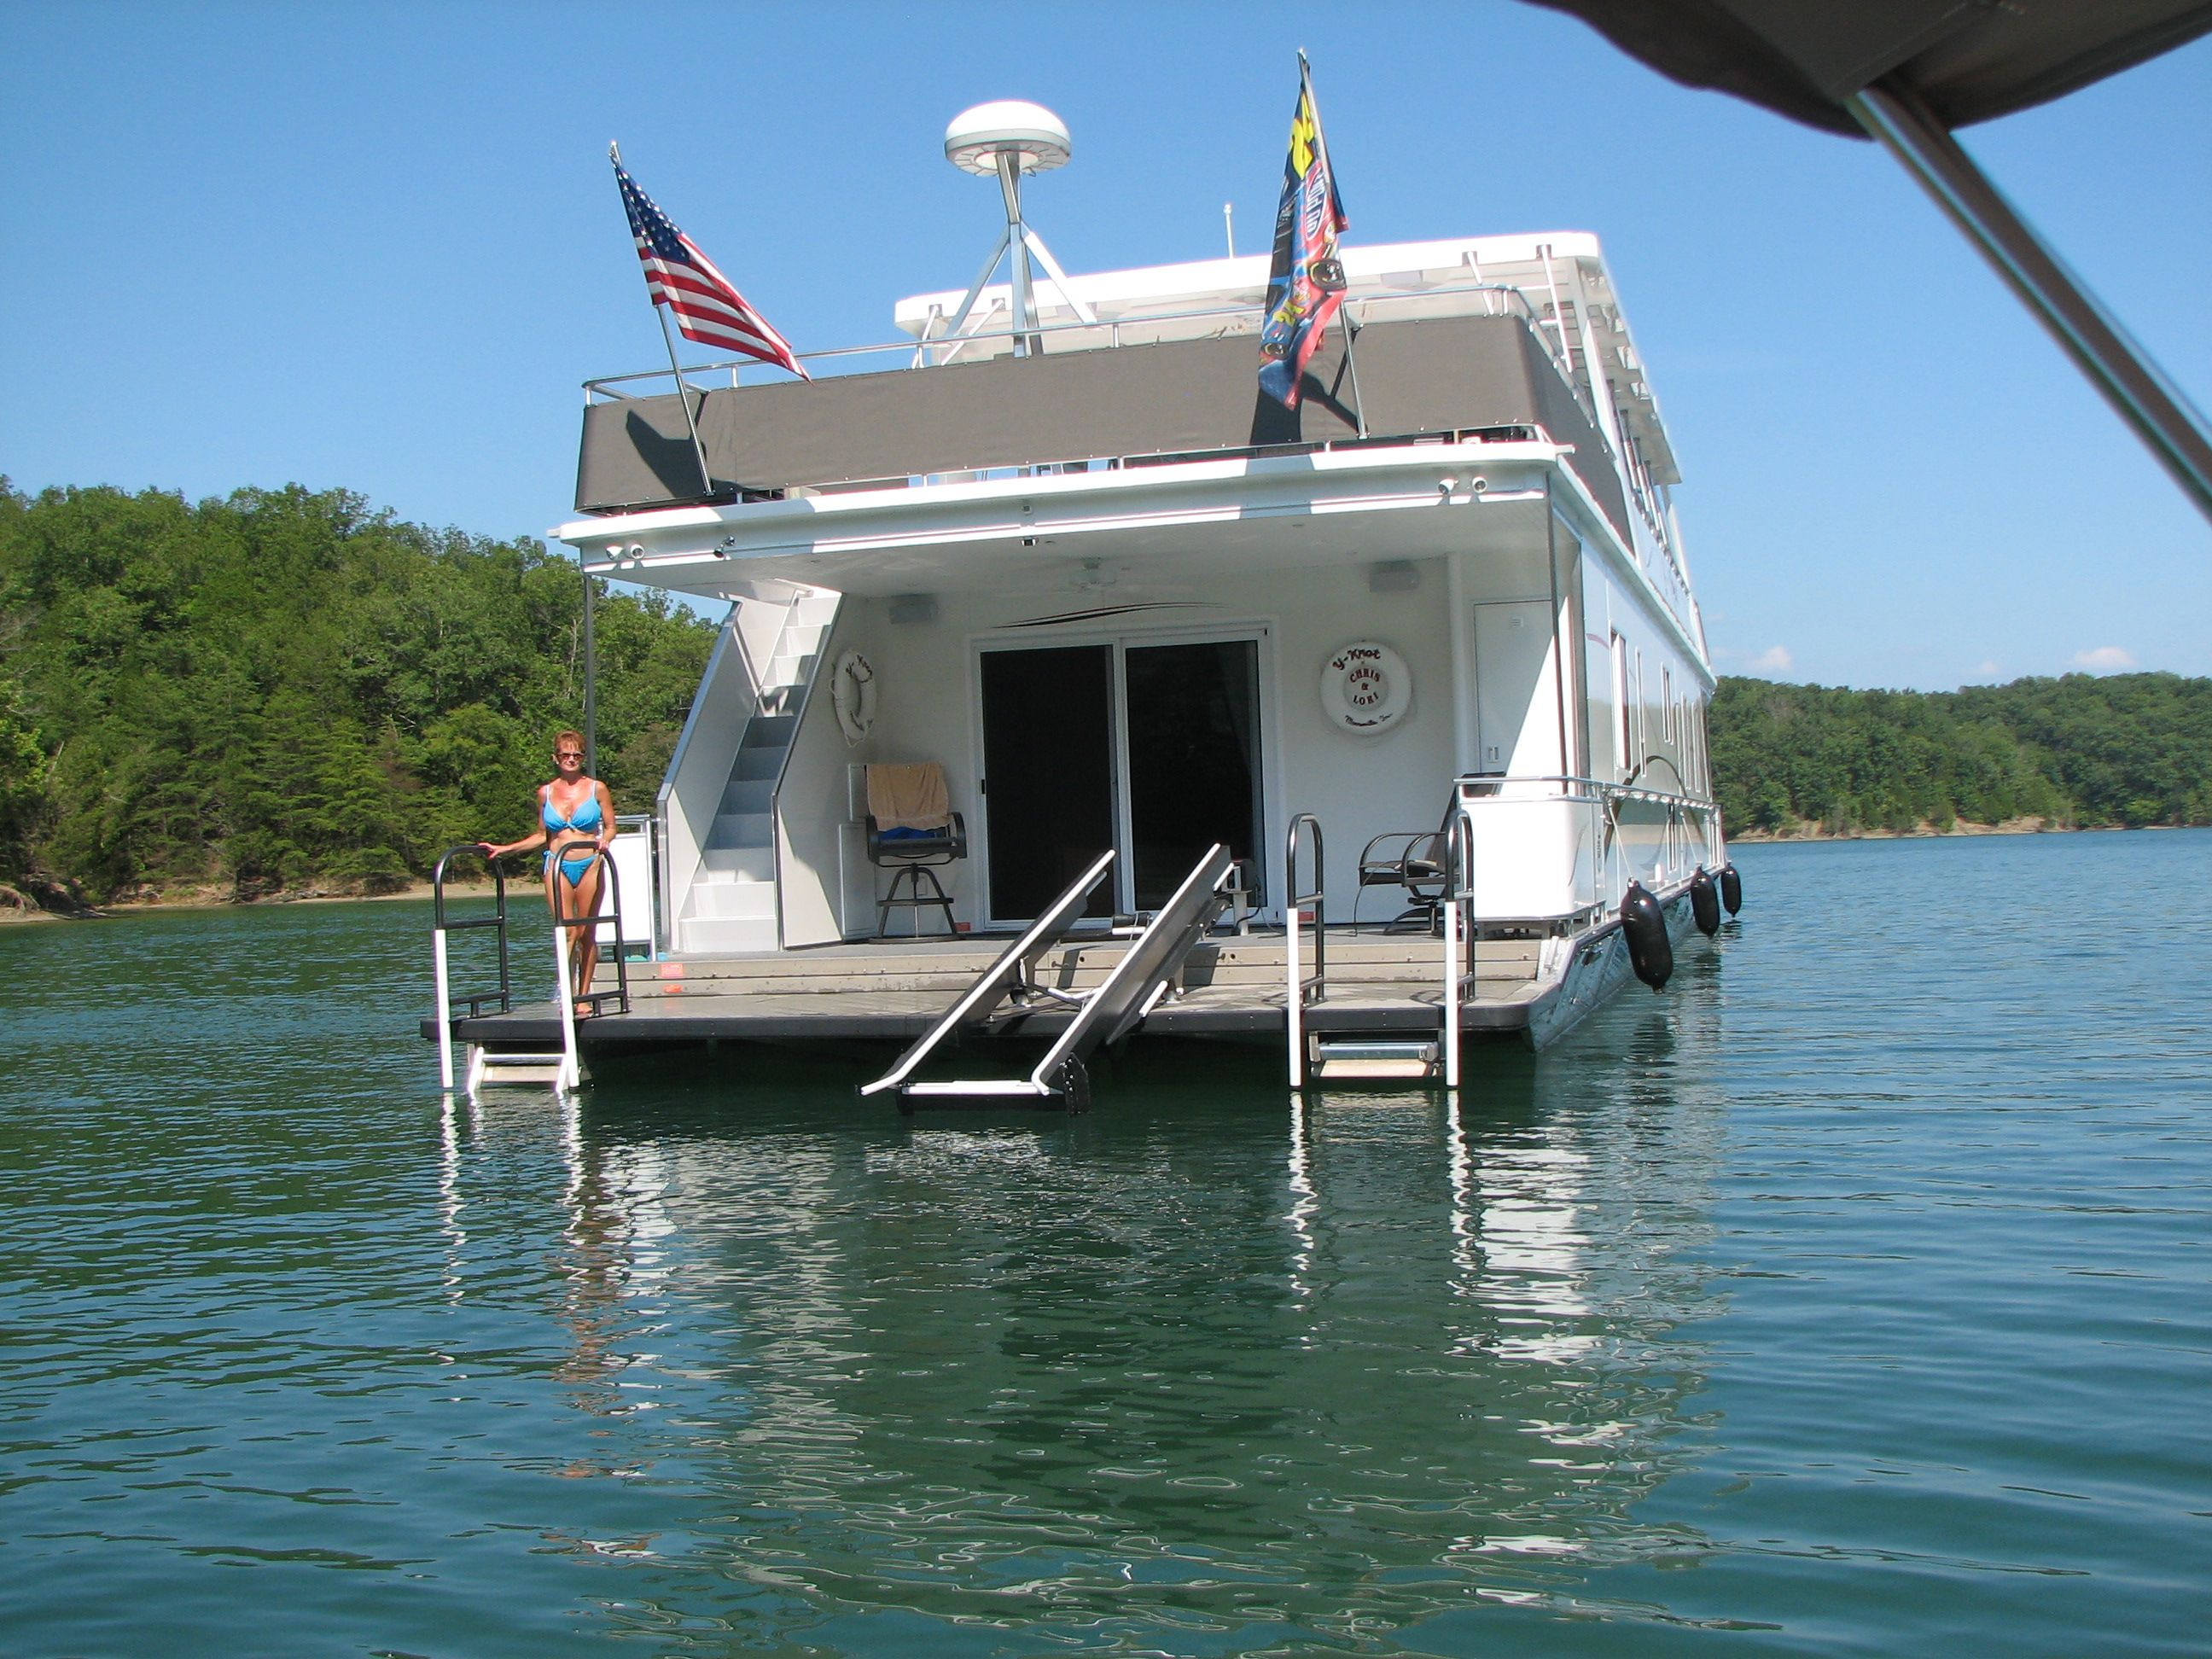 My favorite placedale hollow lake house boat dream